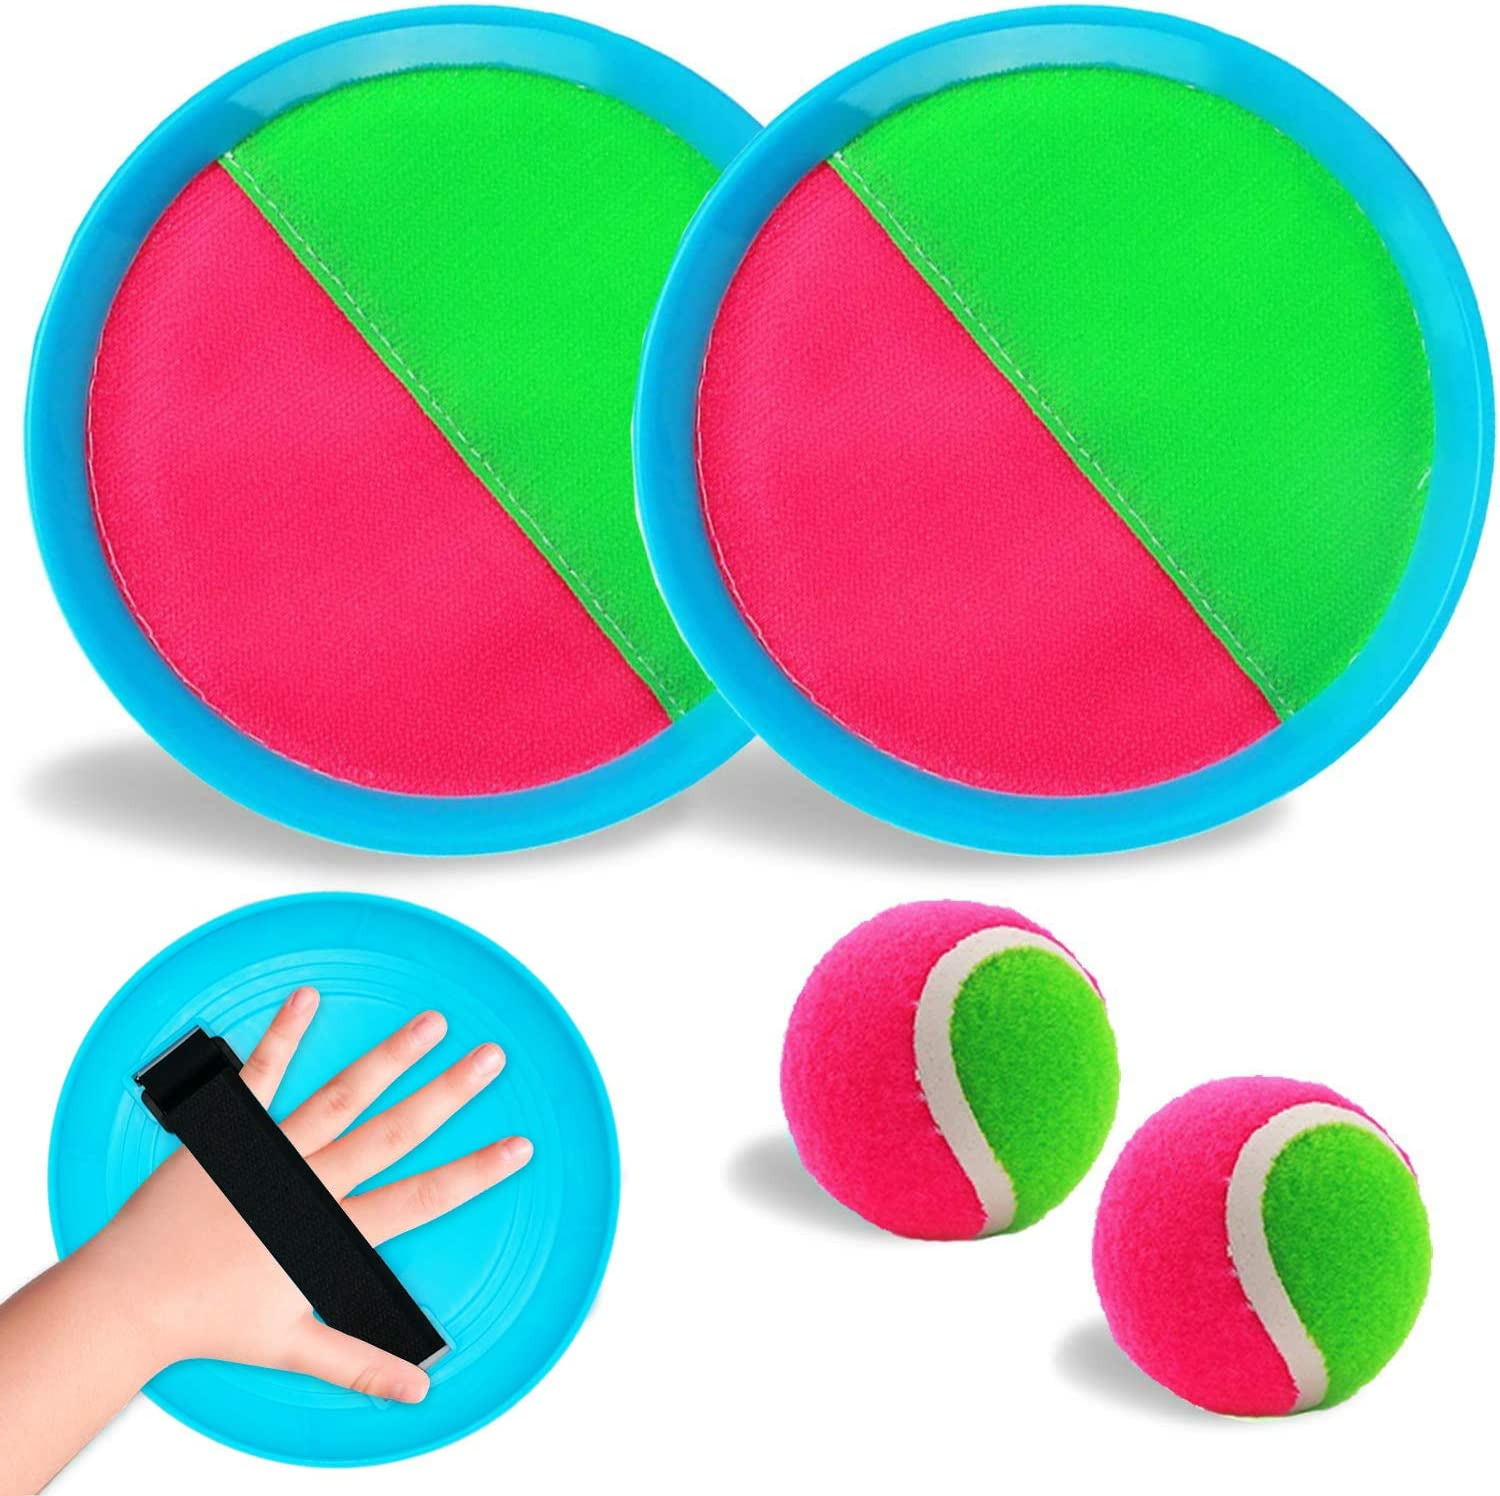 Abbiline Velcro Paddle Toss and Catch Ball Set-2 Rackets 2 Balls Upgraded Version Paddle Catch Games Outdoor Beach Toy for Boys Girls Kids